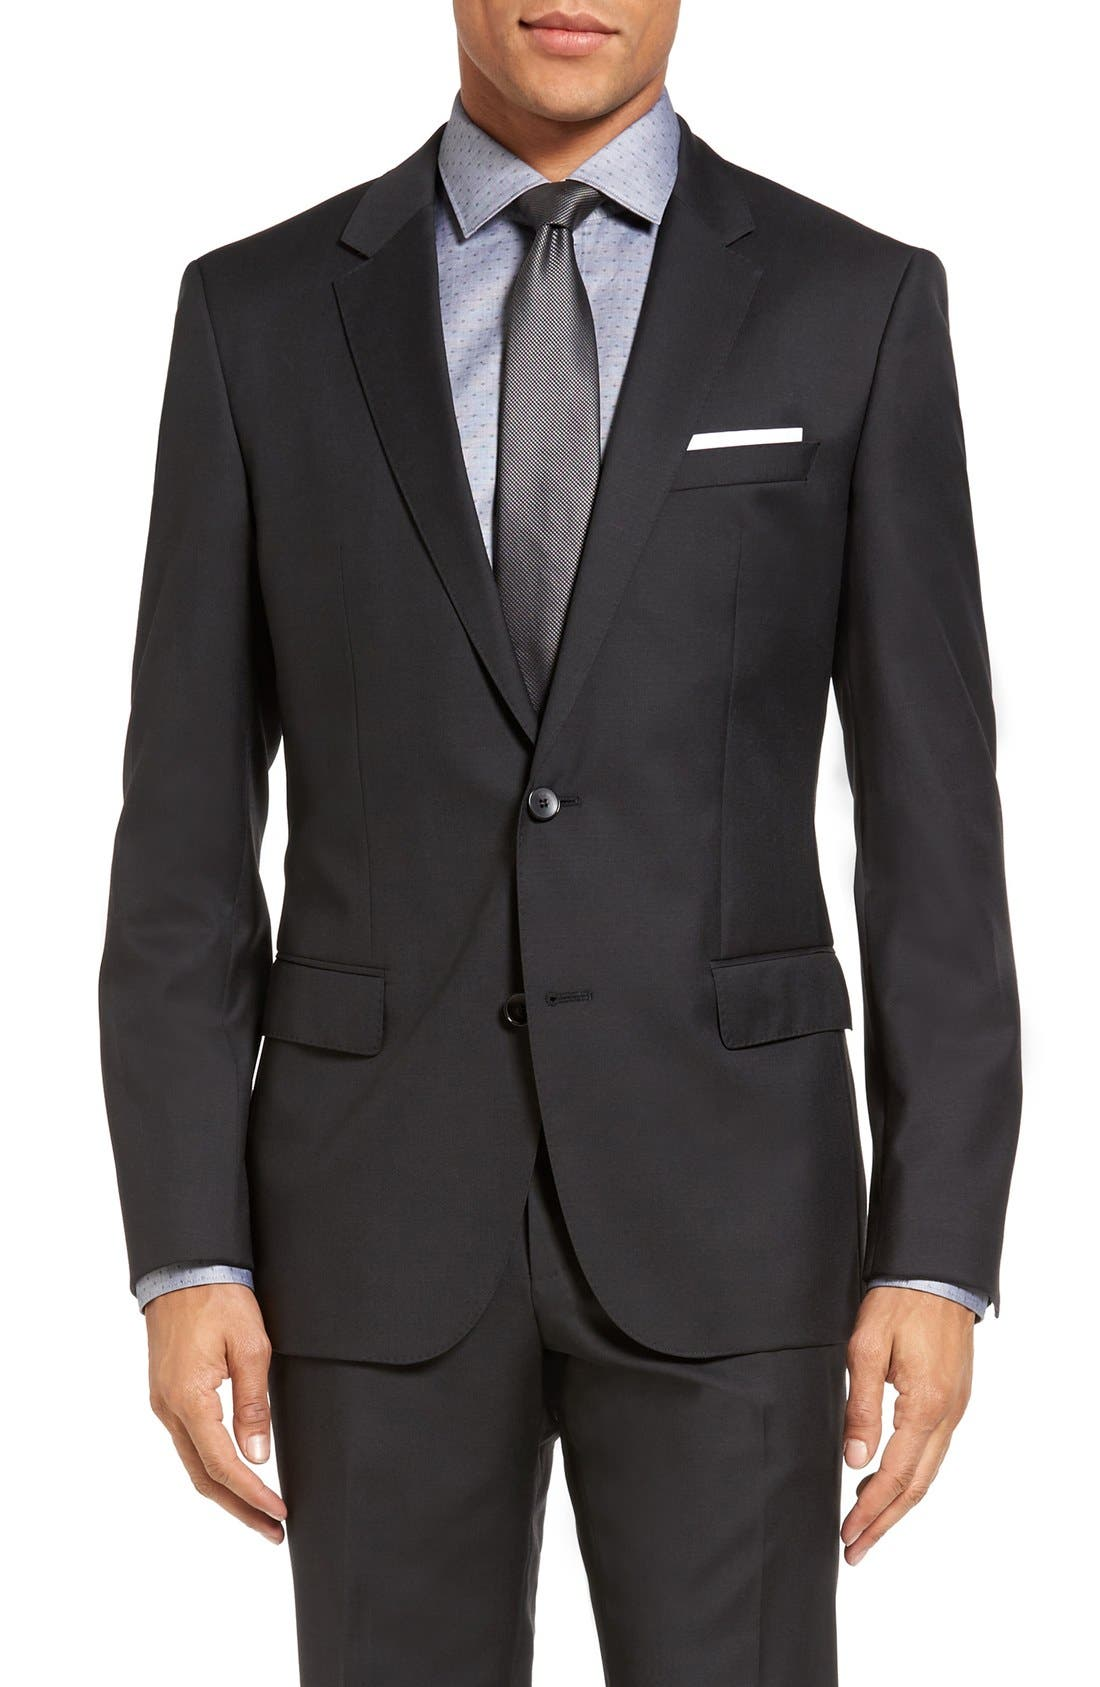 Huge/Genius Trim Fit Wool Suit,                             Alternate thumbnail 5, color,                             Charcoal